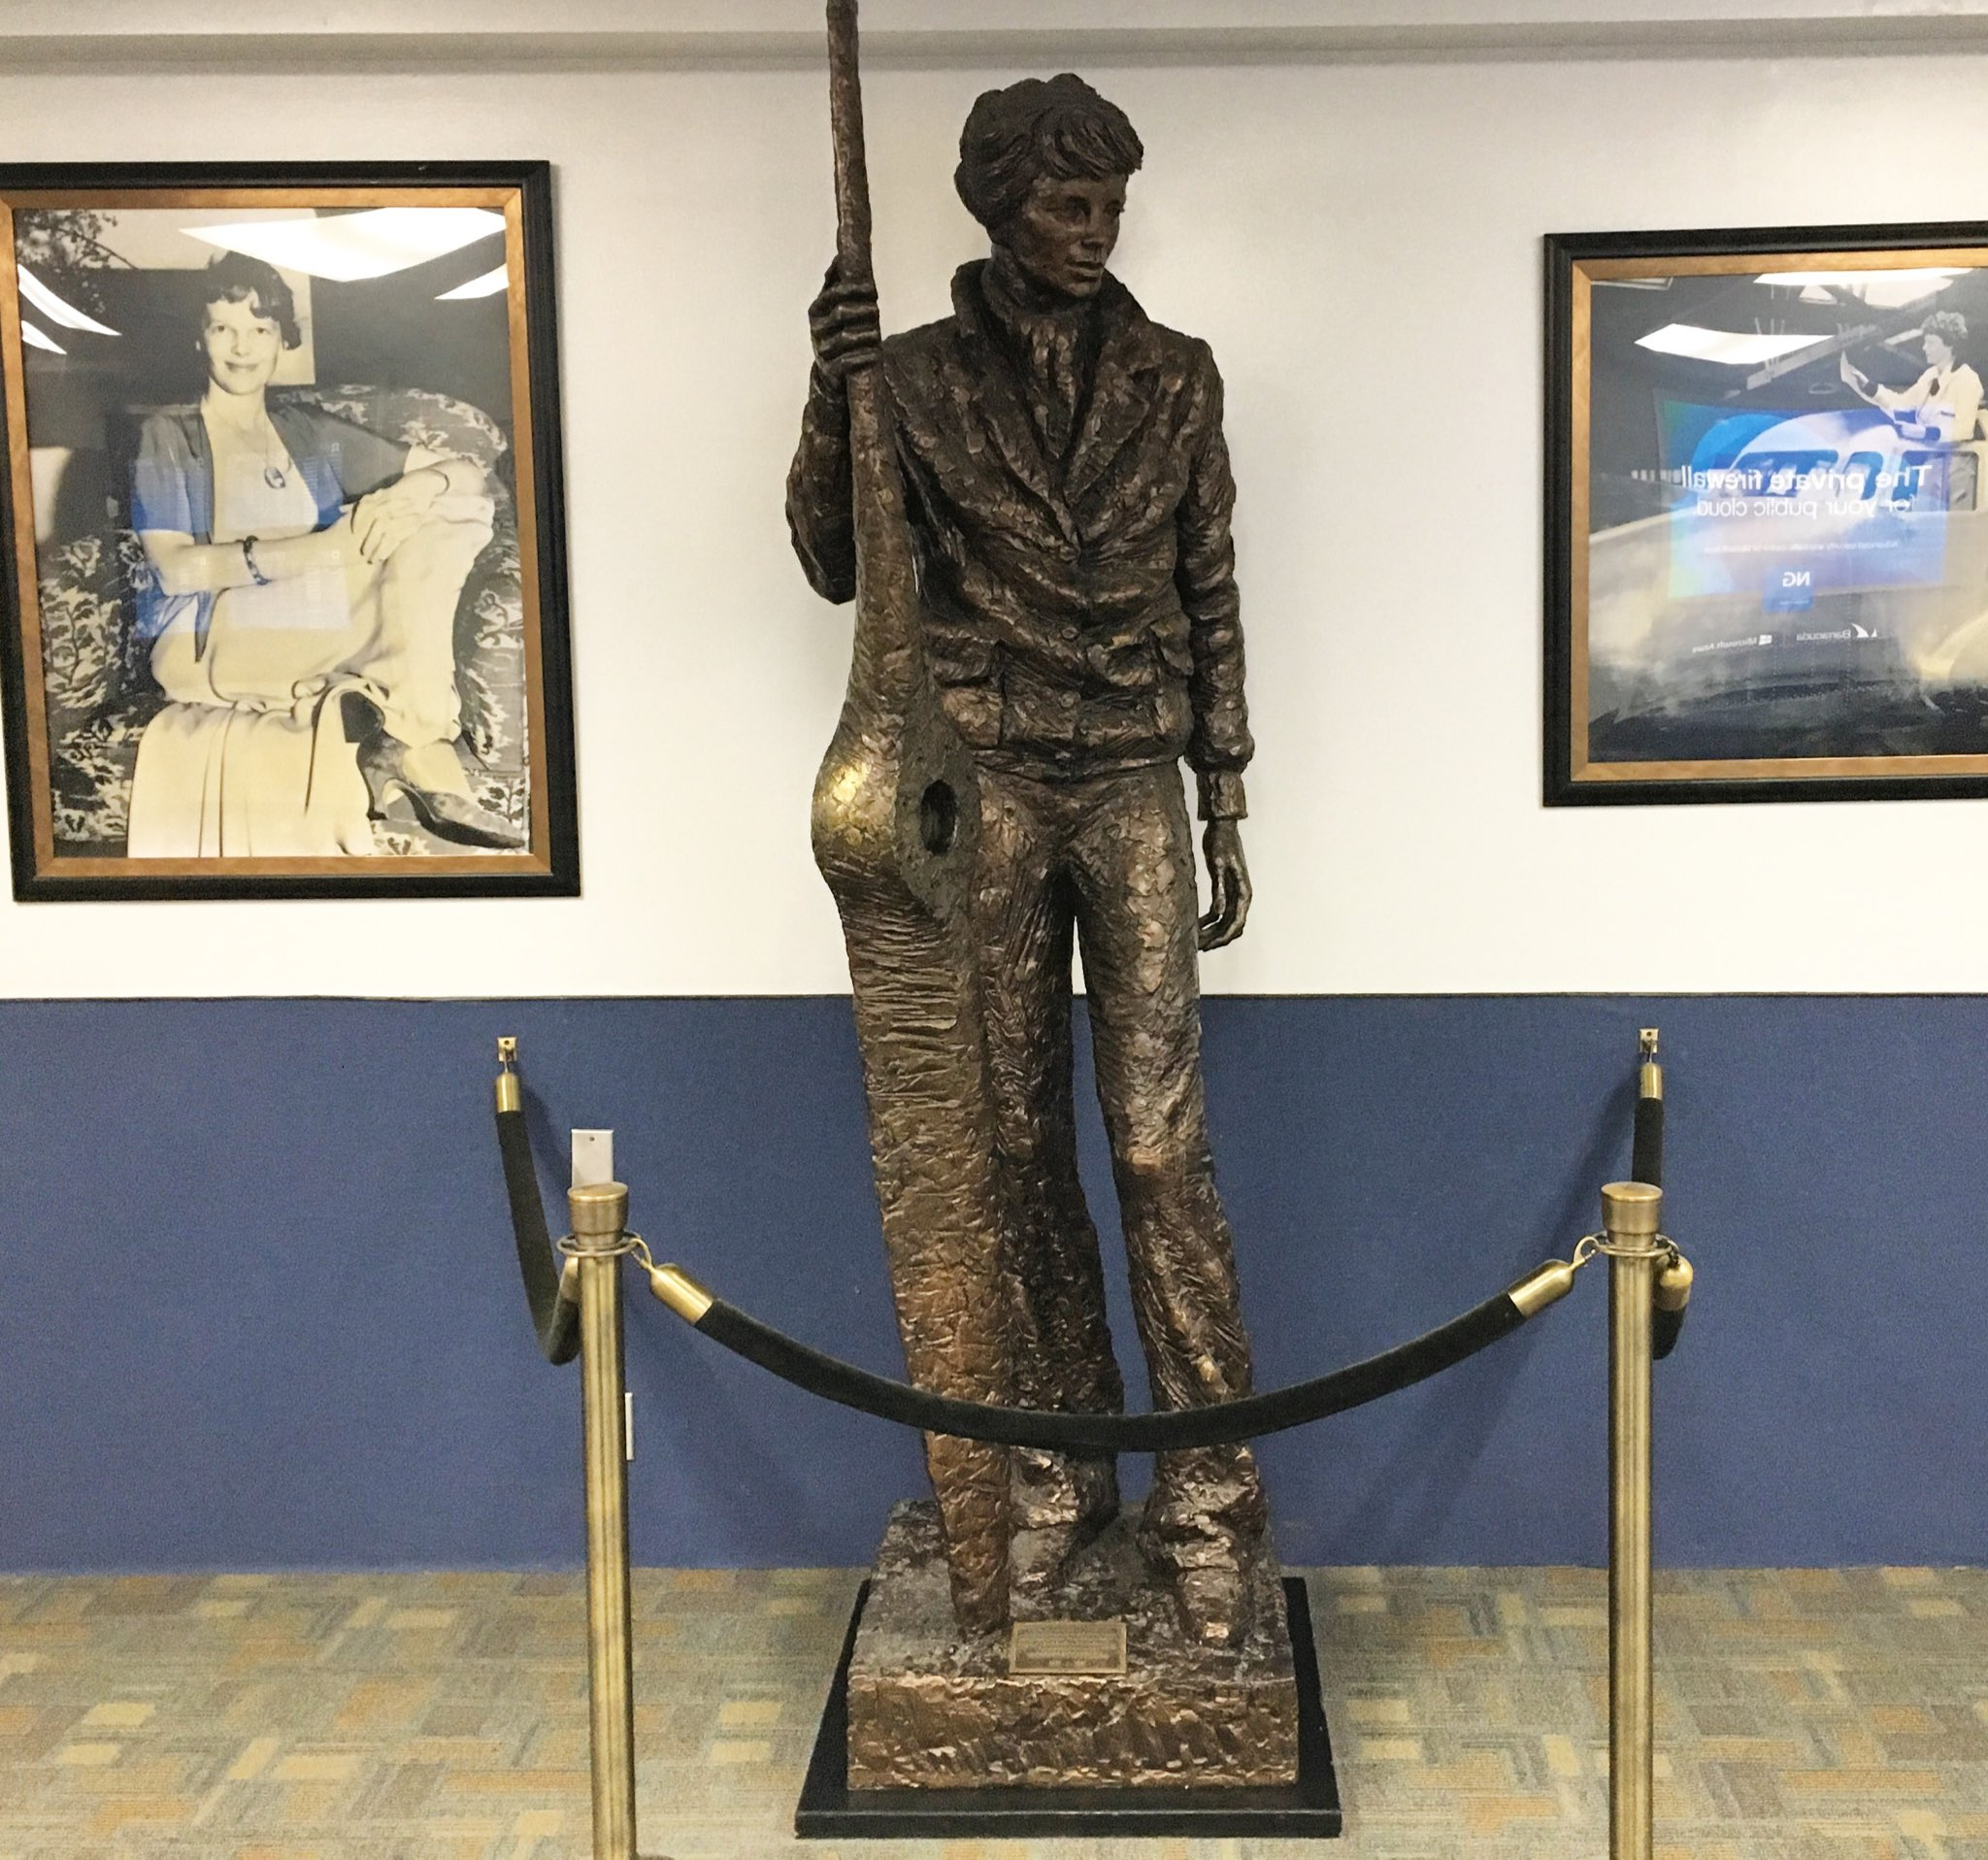 Thanks, Burbank Airport!!! This tribute to Amelia Earhart sure gives me a warm fuzzy feeling before take off!!! �� https://t.co/gNG6dsylXh